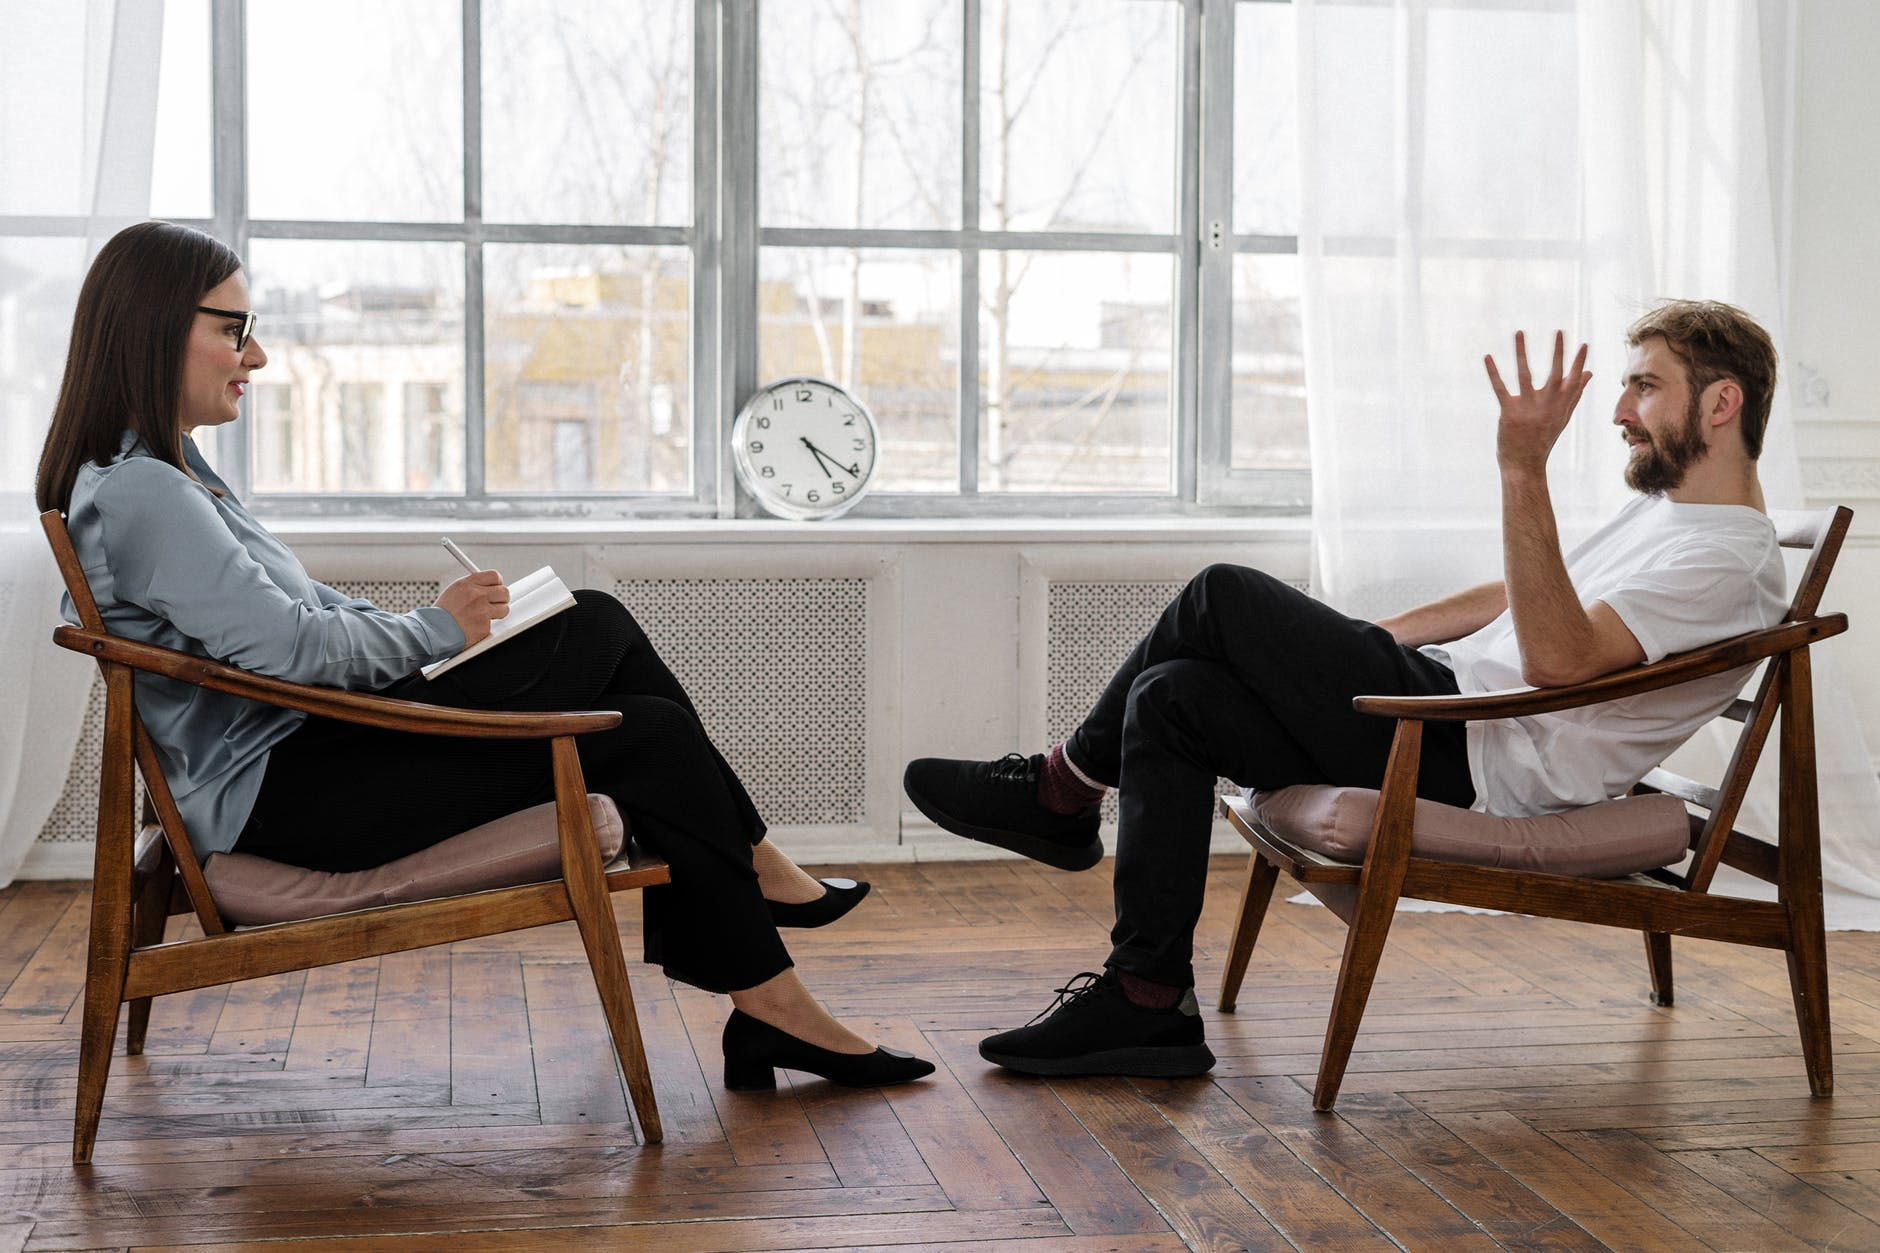 A psychologist and patient in a relaxed session